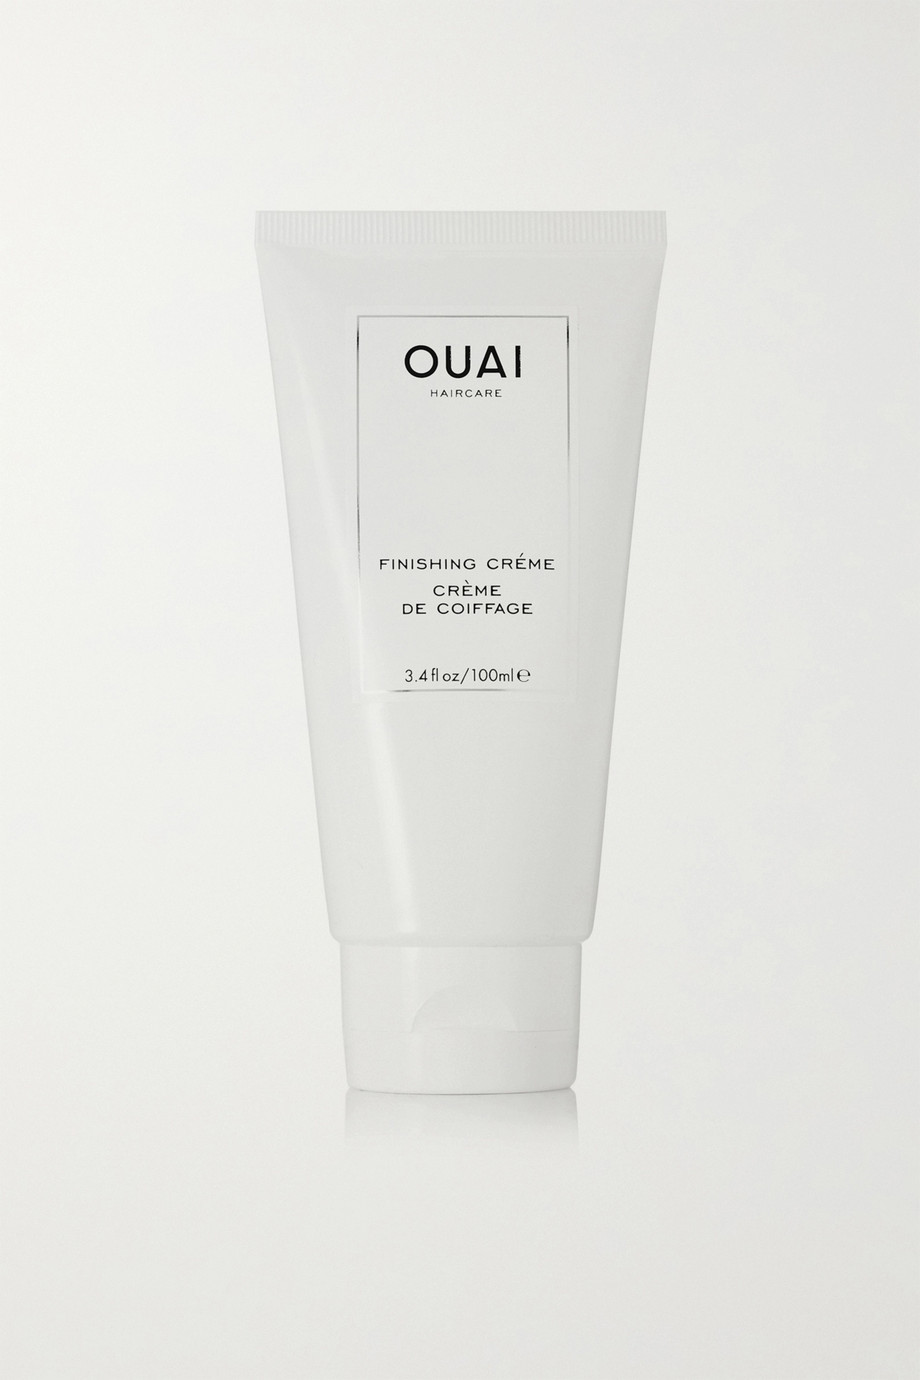 OUAI HAIRCARE Finishing Crème, 100ml